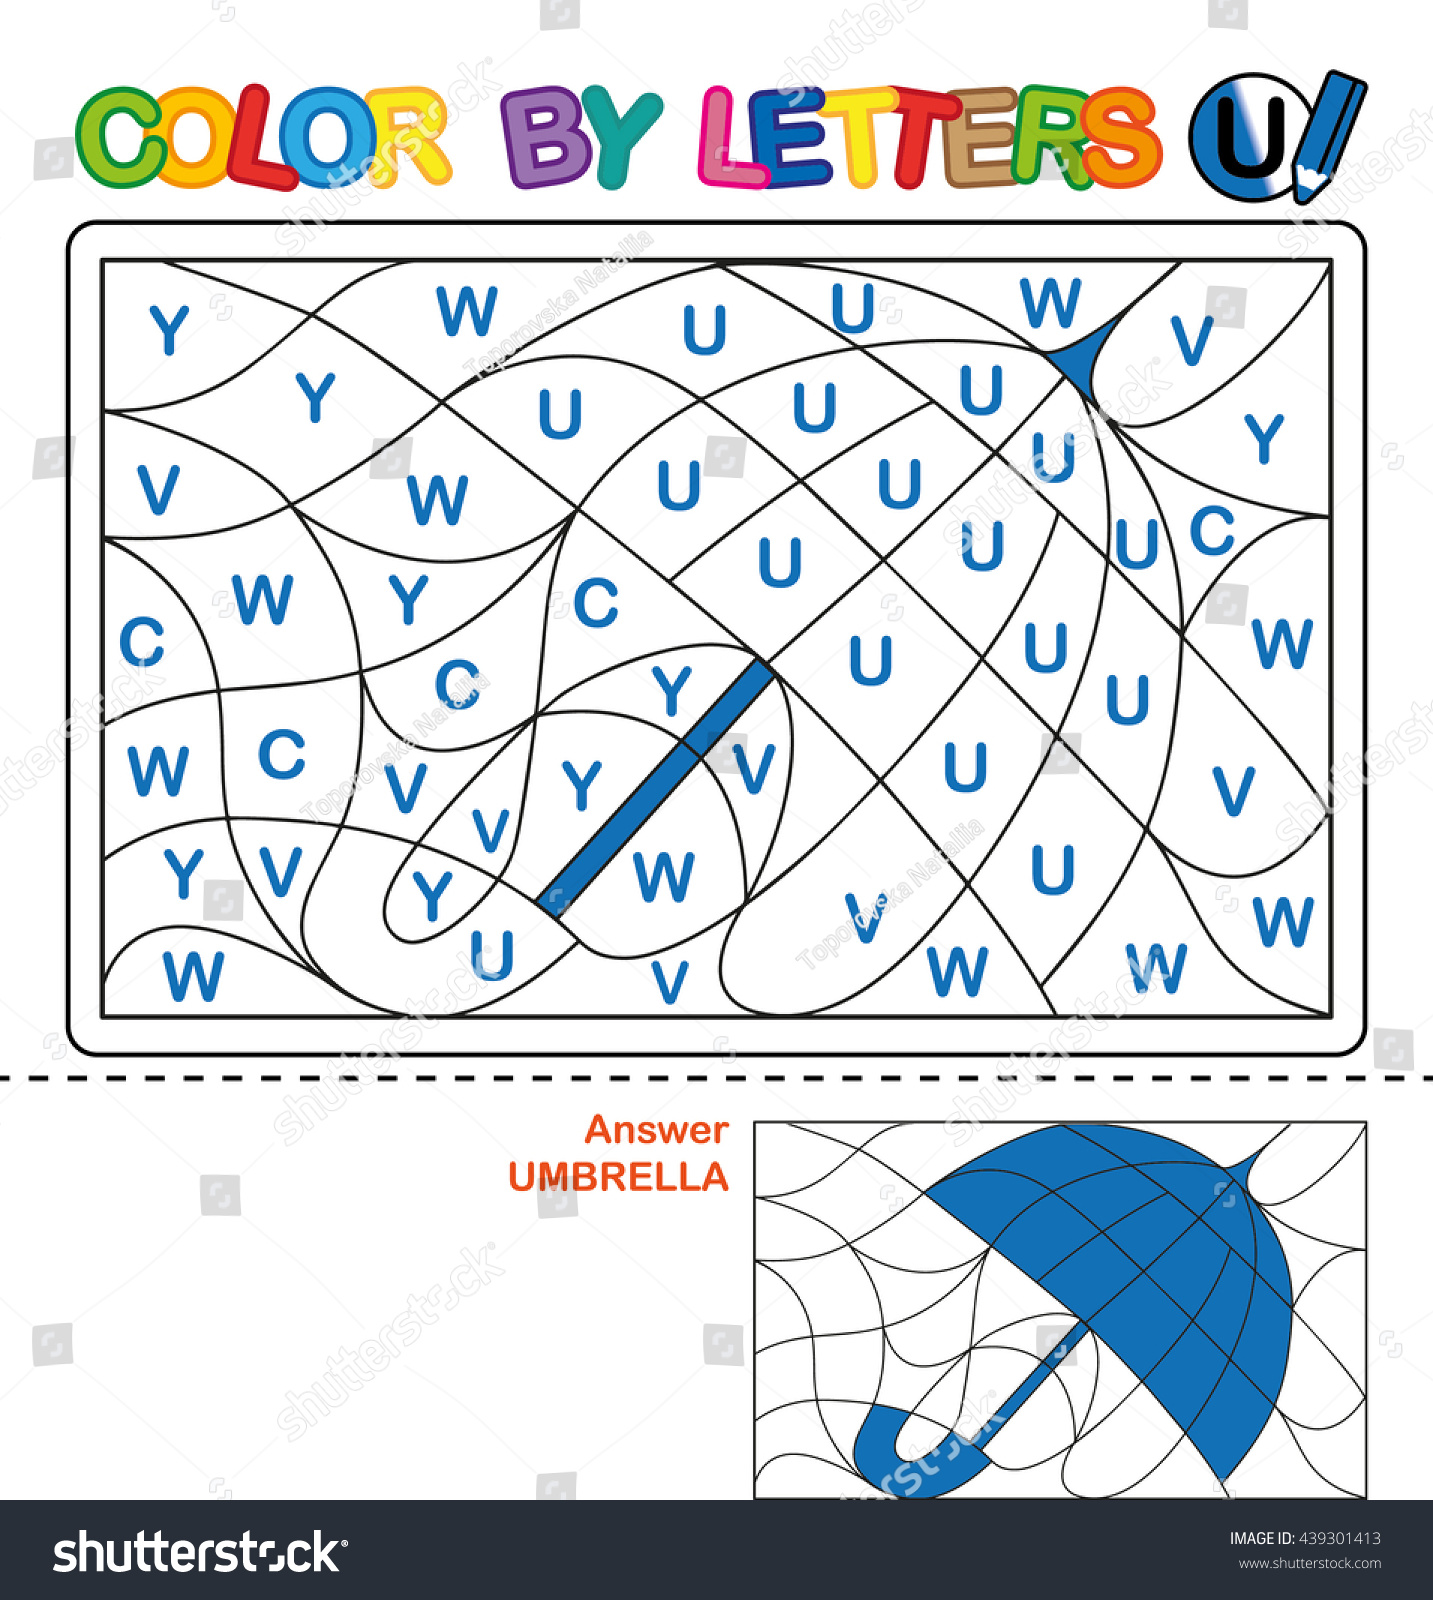 Umbrella Maze Worksheet Preschool